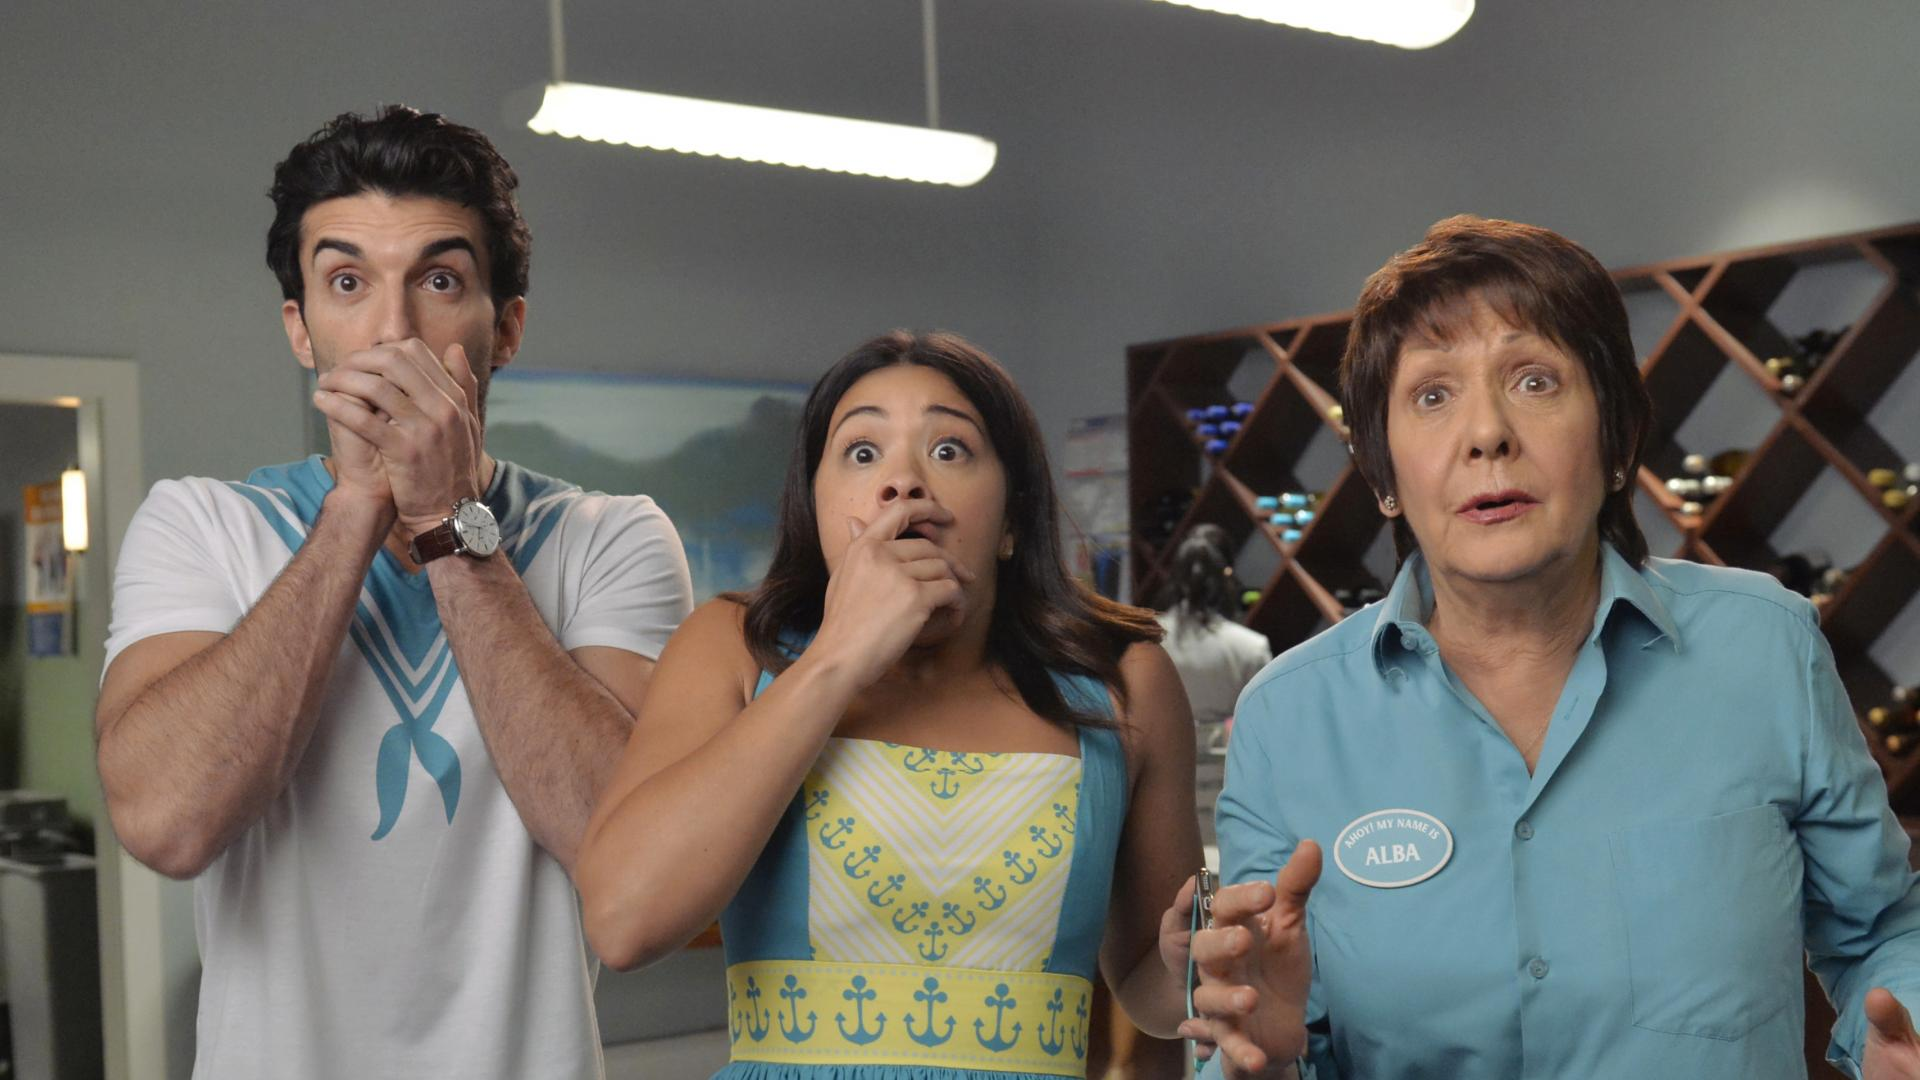 After 30 Years of Celibacy, Abuela Got Down With a Vibrator on 'Jane the Virgin'